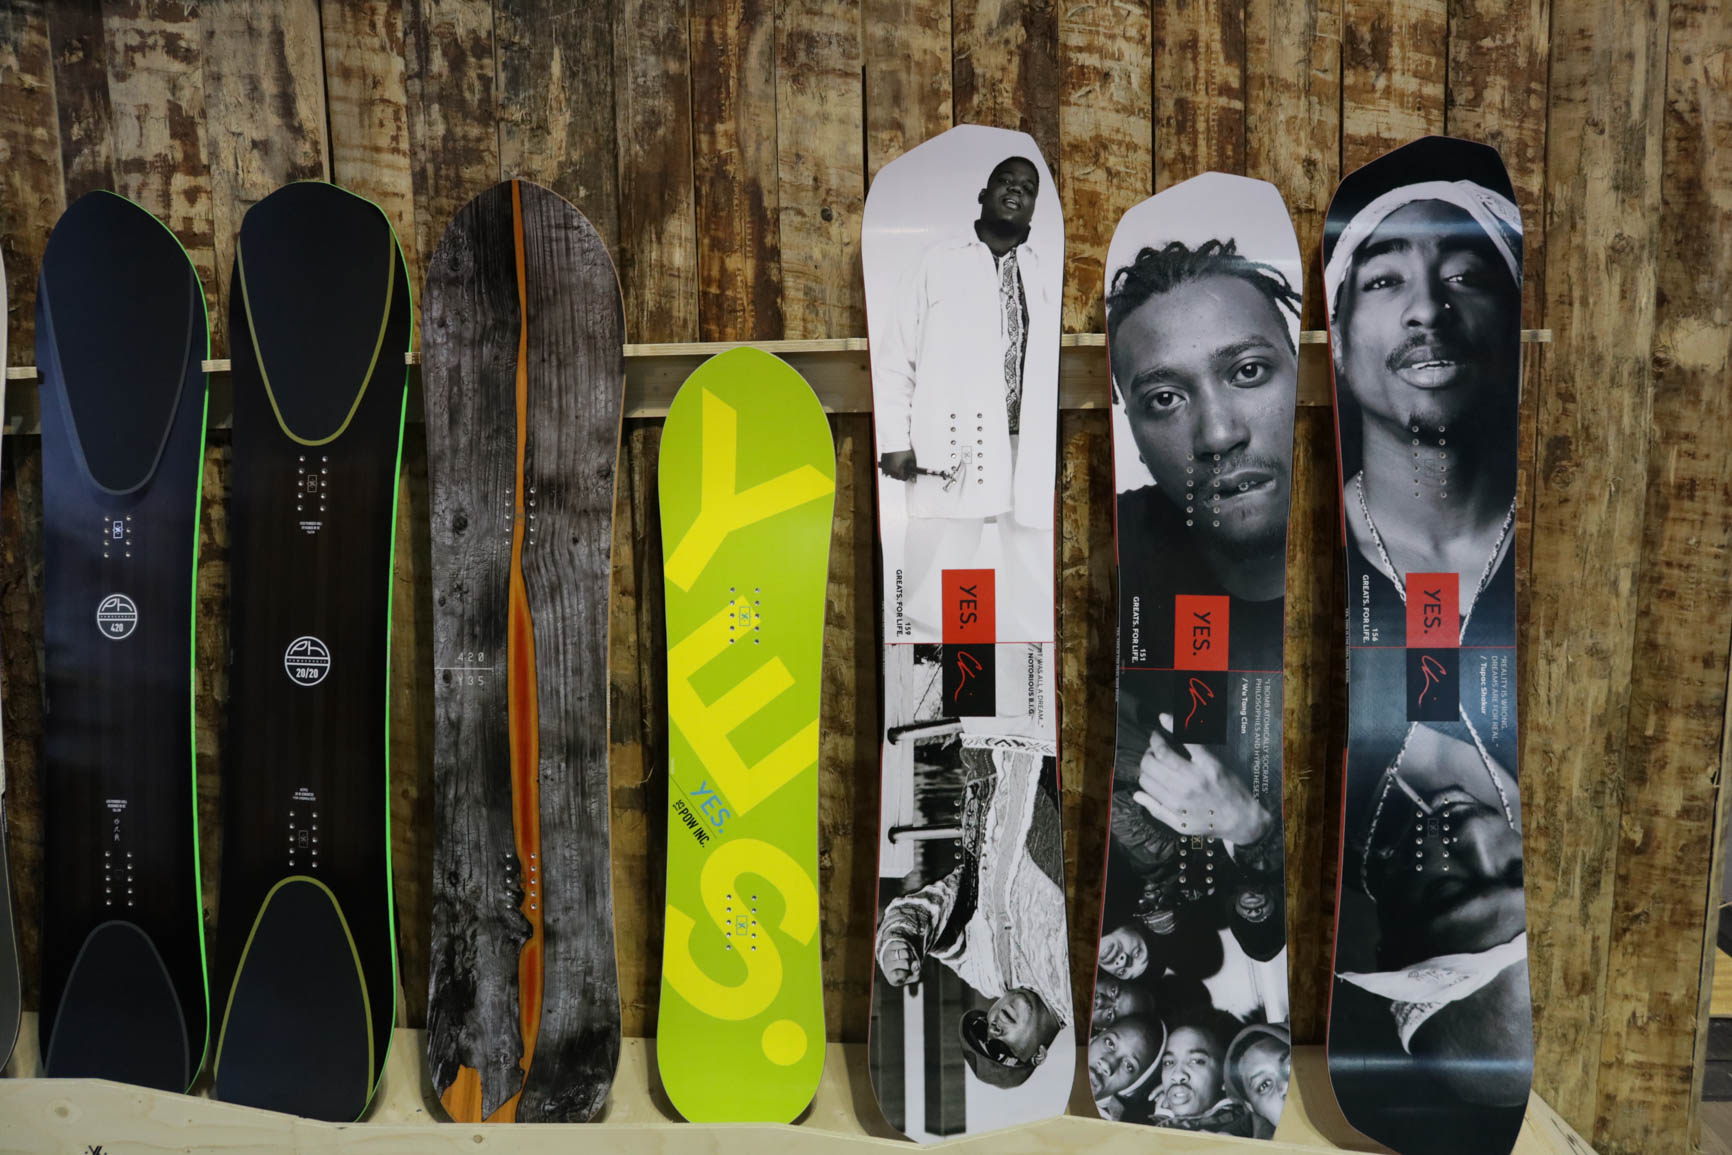 YES Snowboards (von links nach rechts): 420 PH, 20/20, 420, PowInc. für Kids, Greats.ForLife Serie